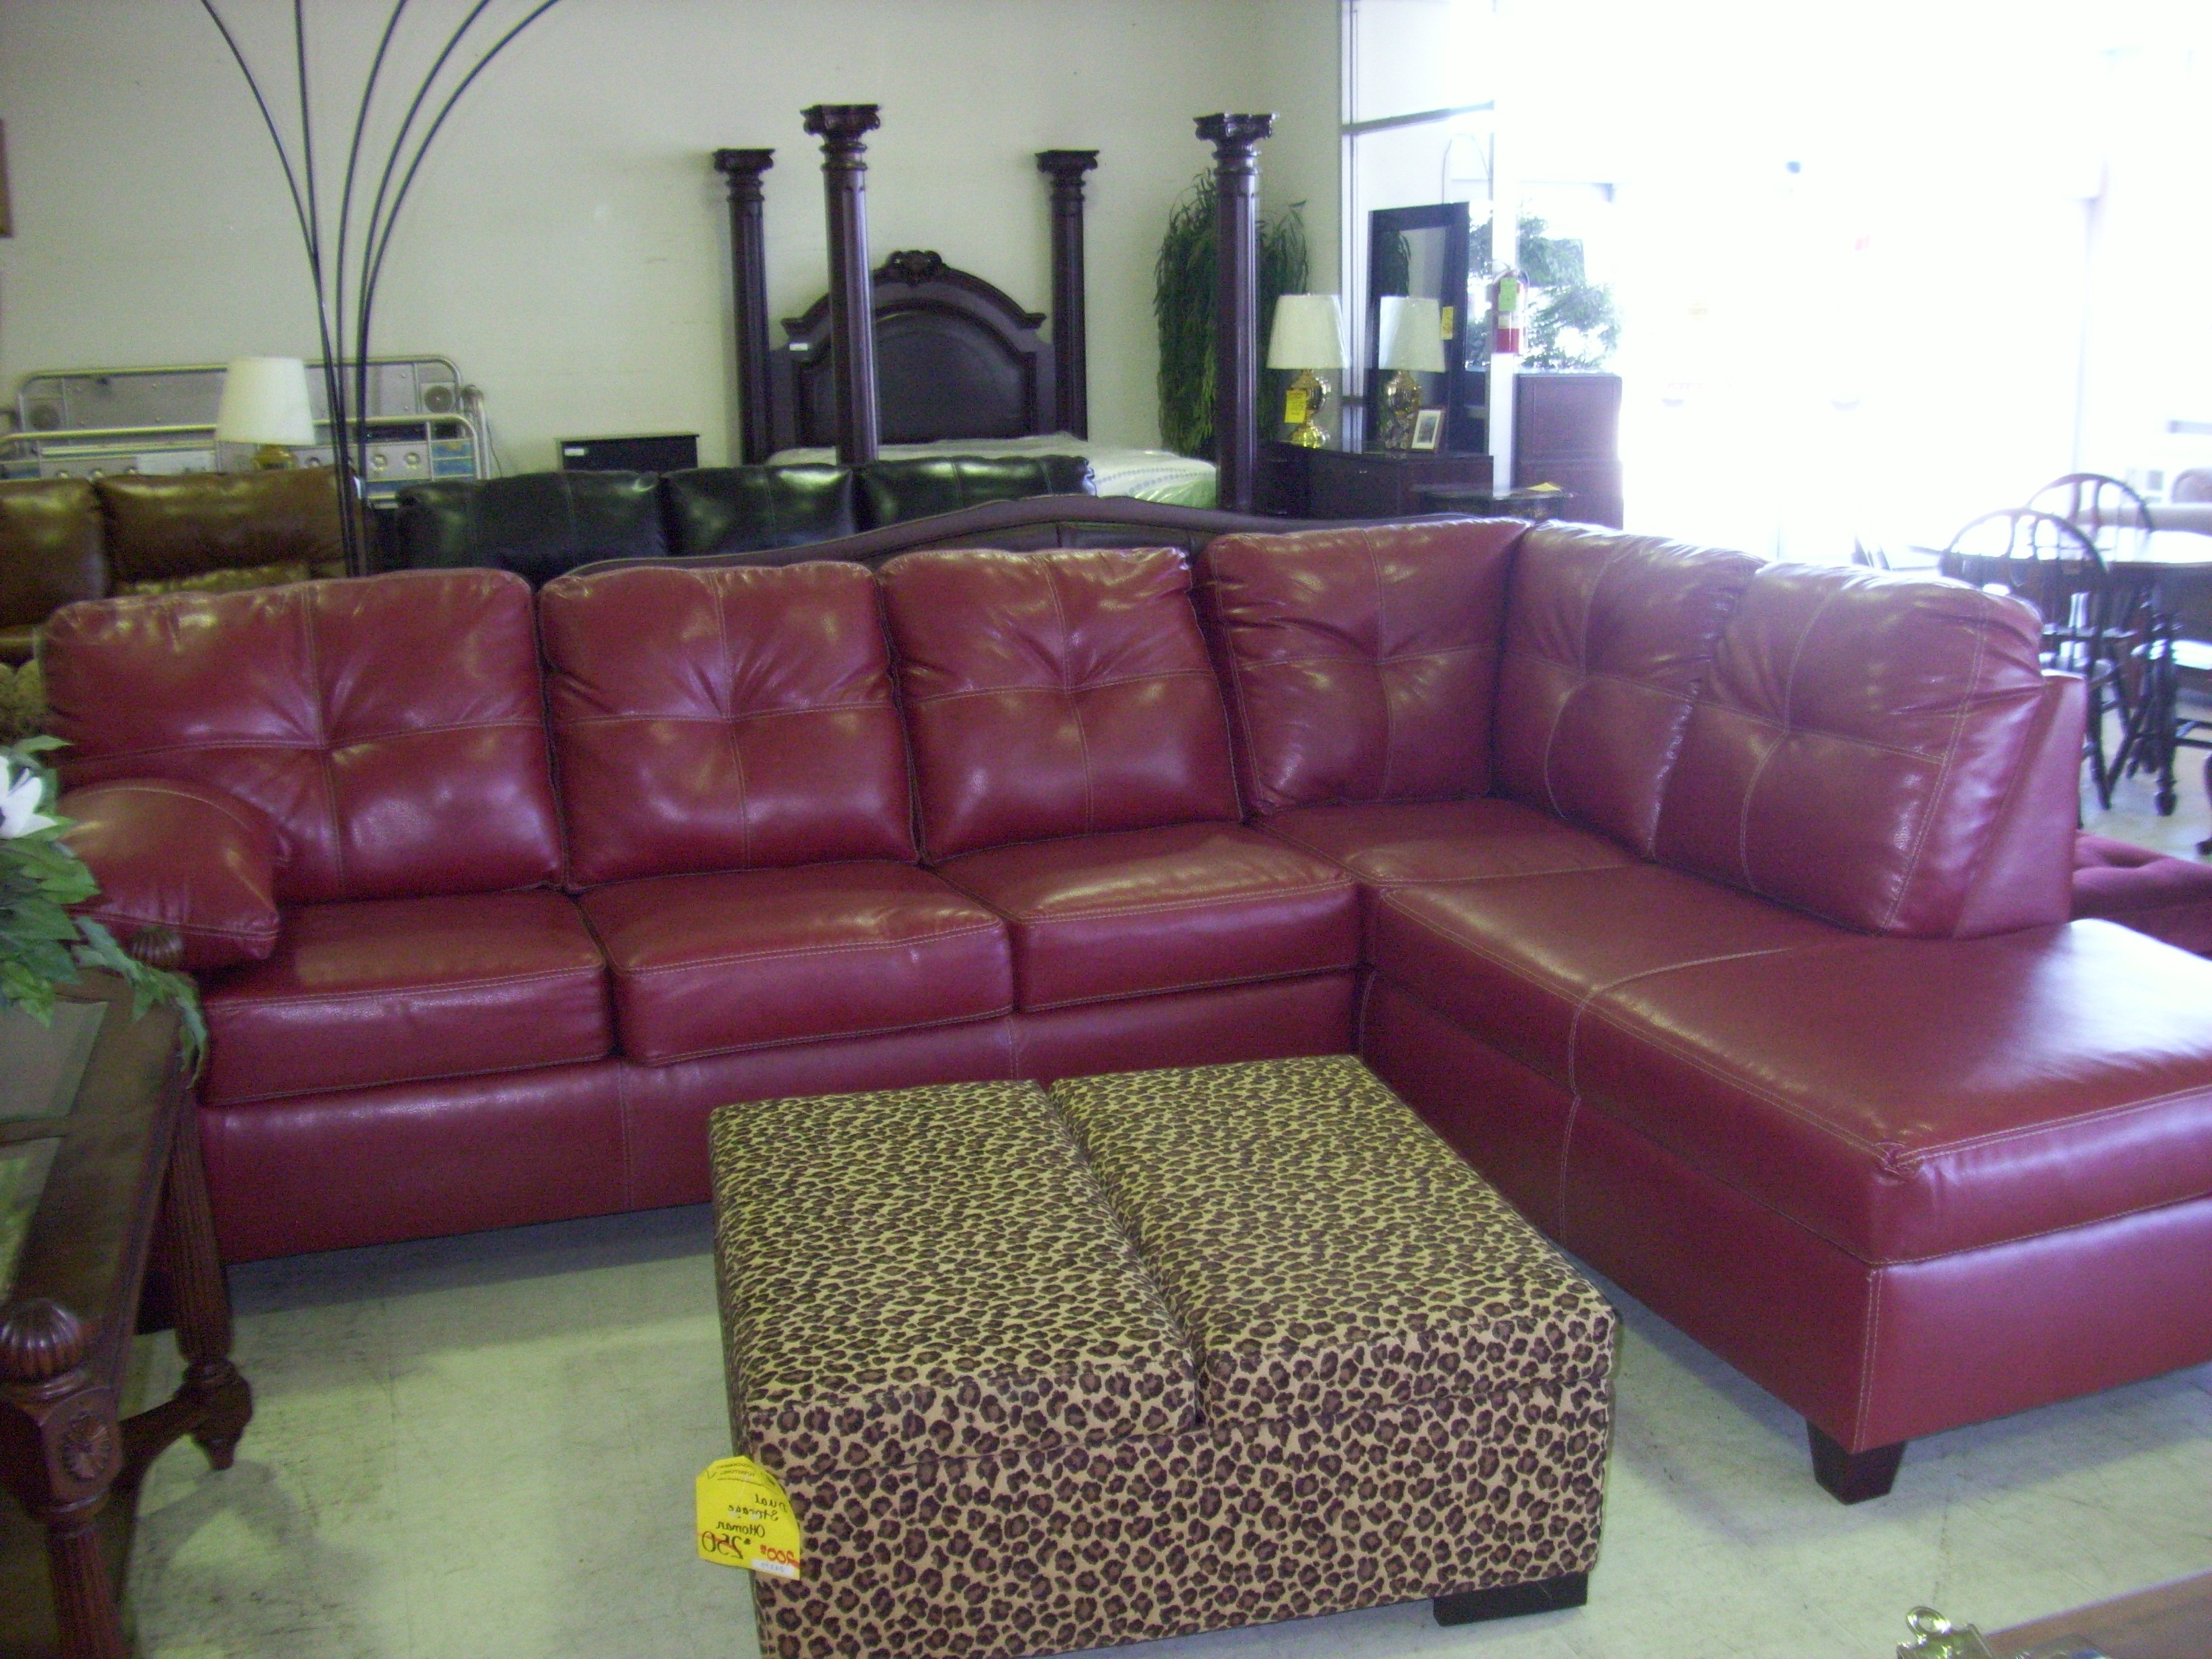 Red Faux Leather Sectionals With Regard To Most Recently Released Exotic L Shaped Red Purple Faux Leather Sofa With Tufted Back Rest (View 7 of 15)